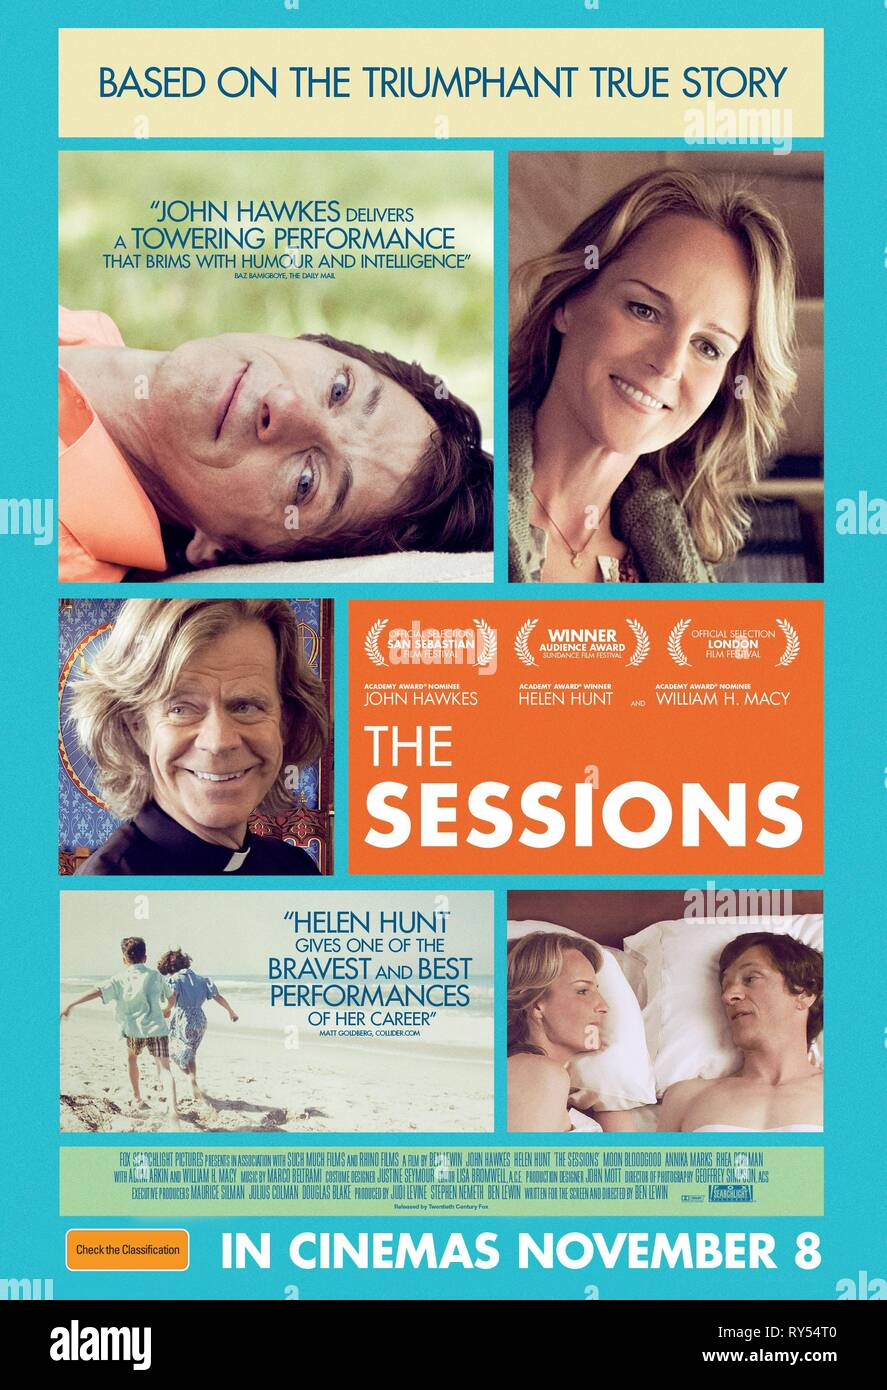 HAWKES,HUNT,POSTER, THE SESSIONS, 2012 - Stock Image